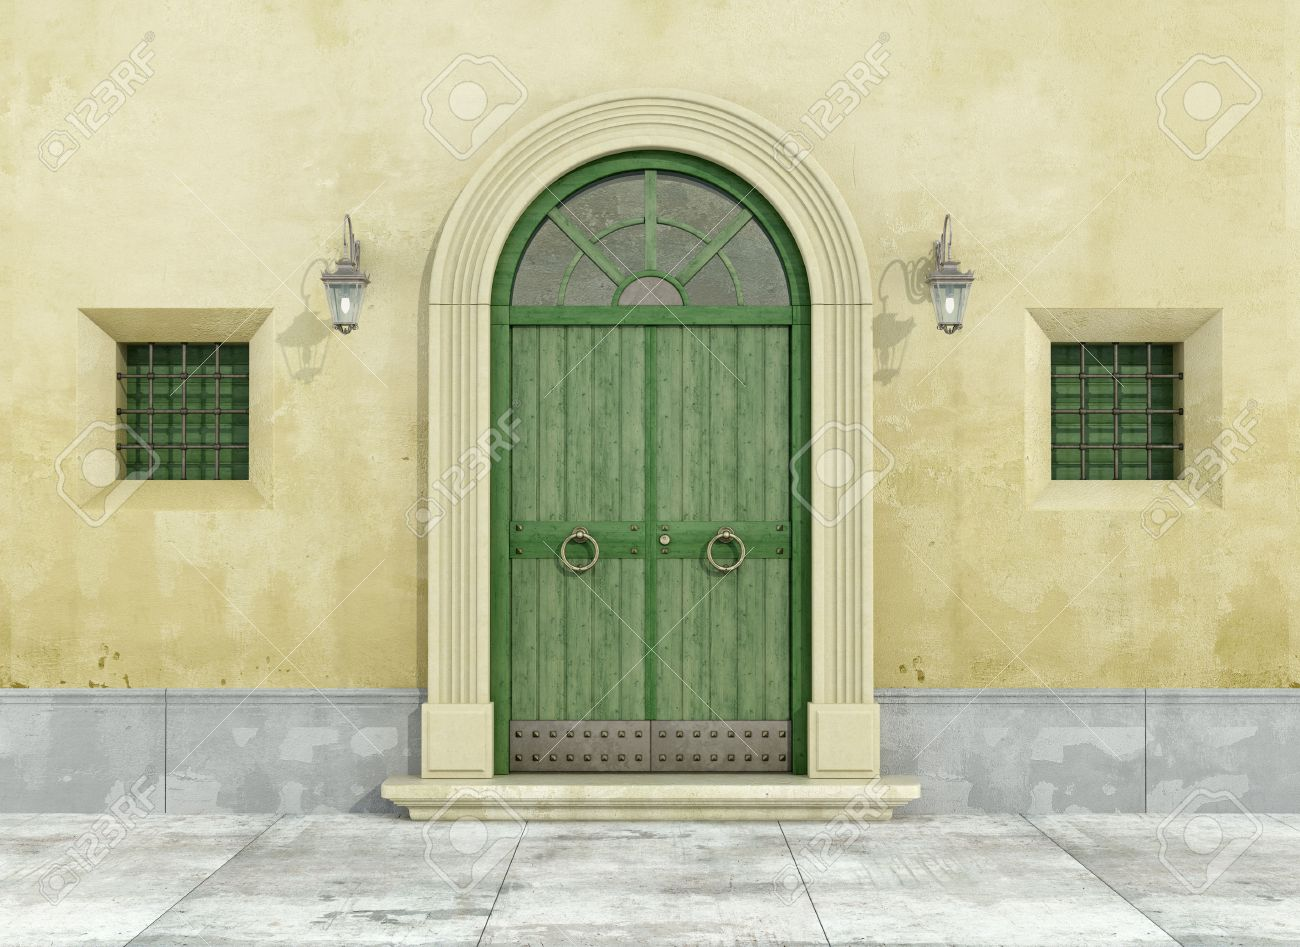 Detail of an old facade with green doorway and two little windows - 3D Rendering Standard-Bild - 47995126